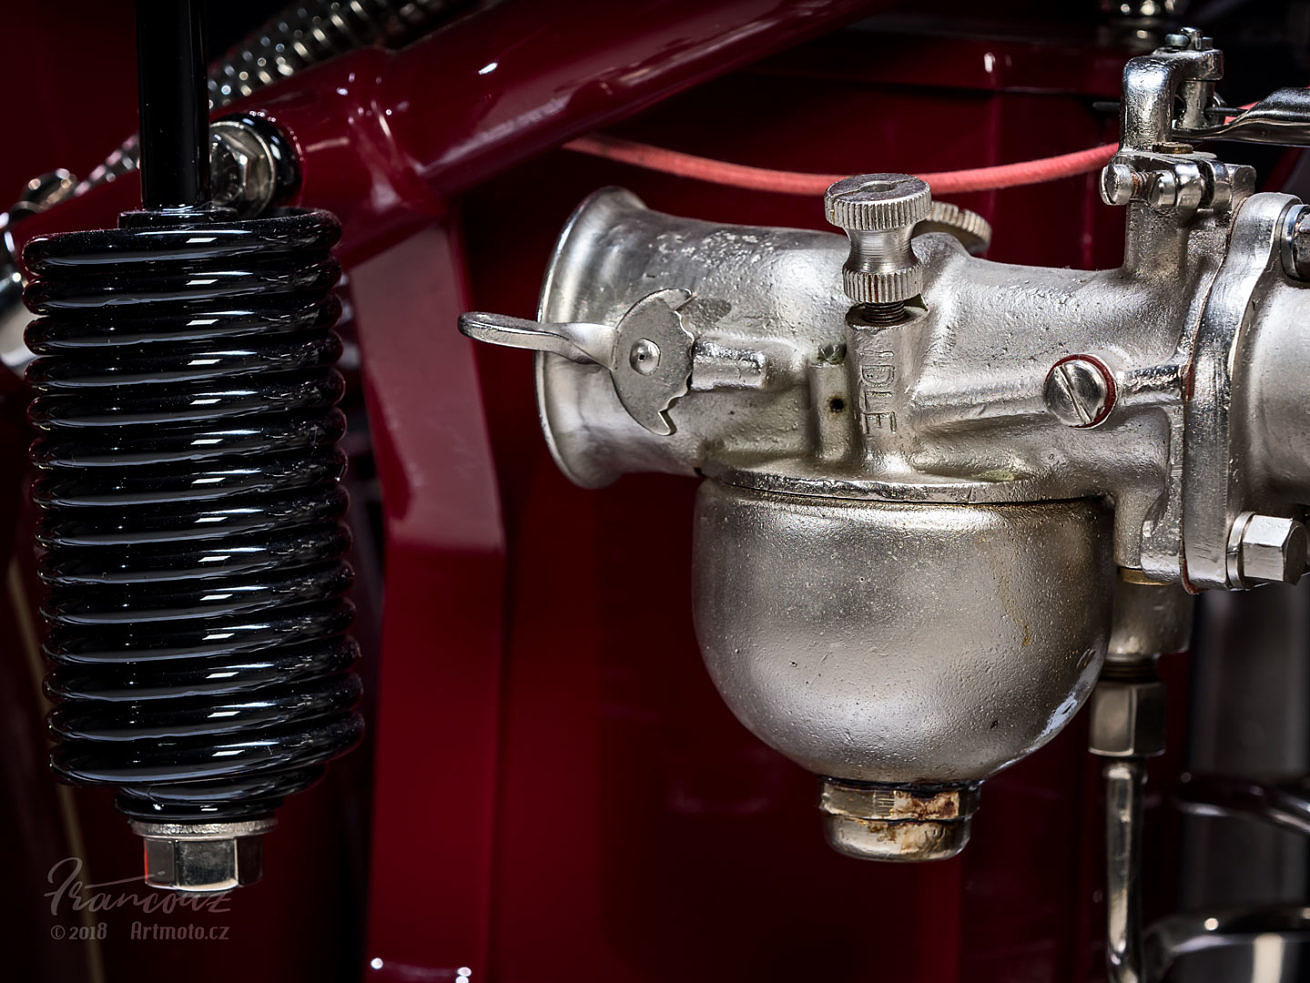 Details view of engine Indian Four 1930